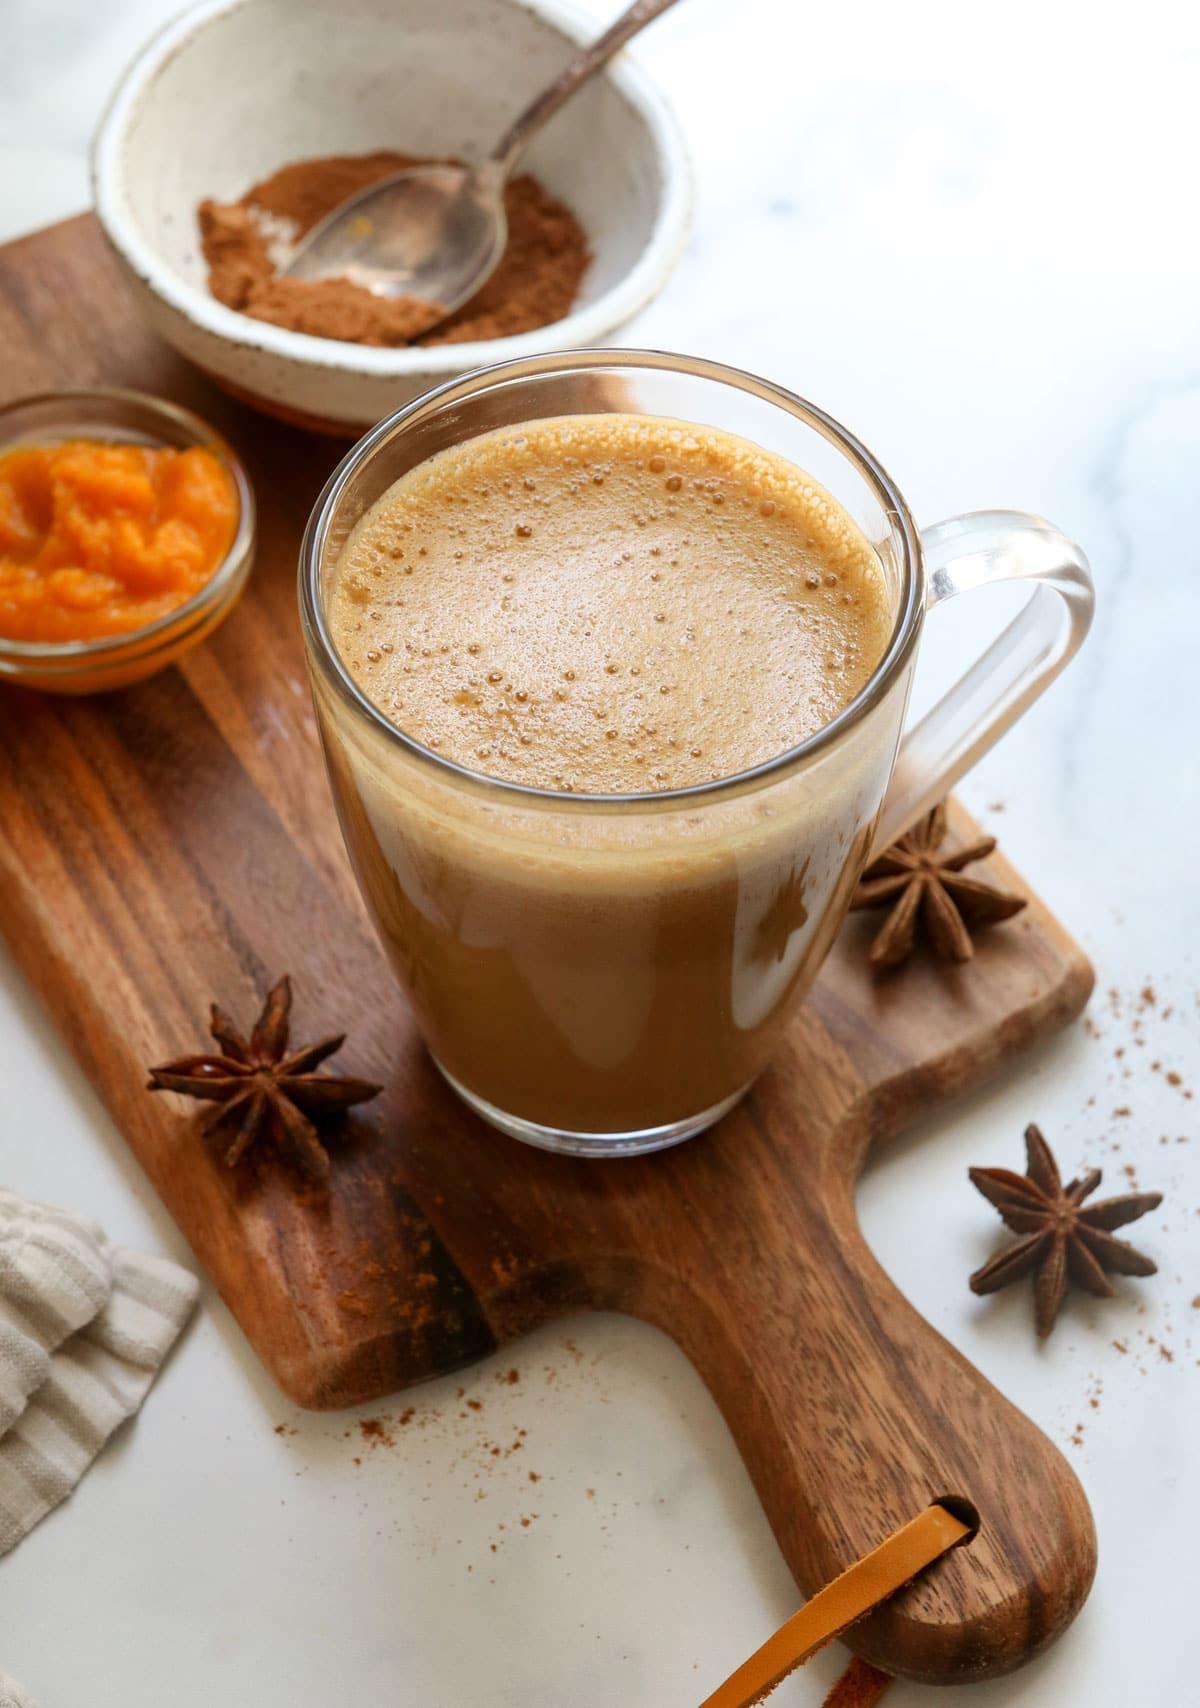 pumpkin spice latte with foam on top at an angle